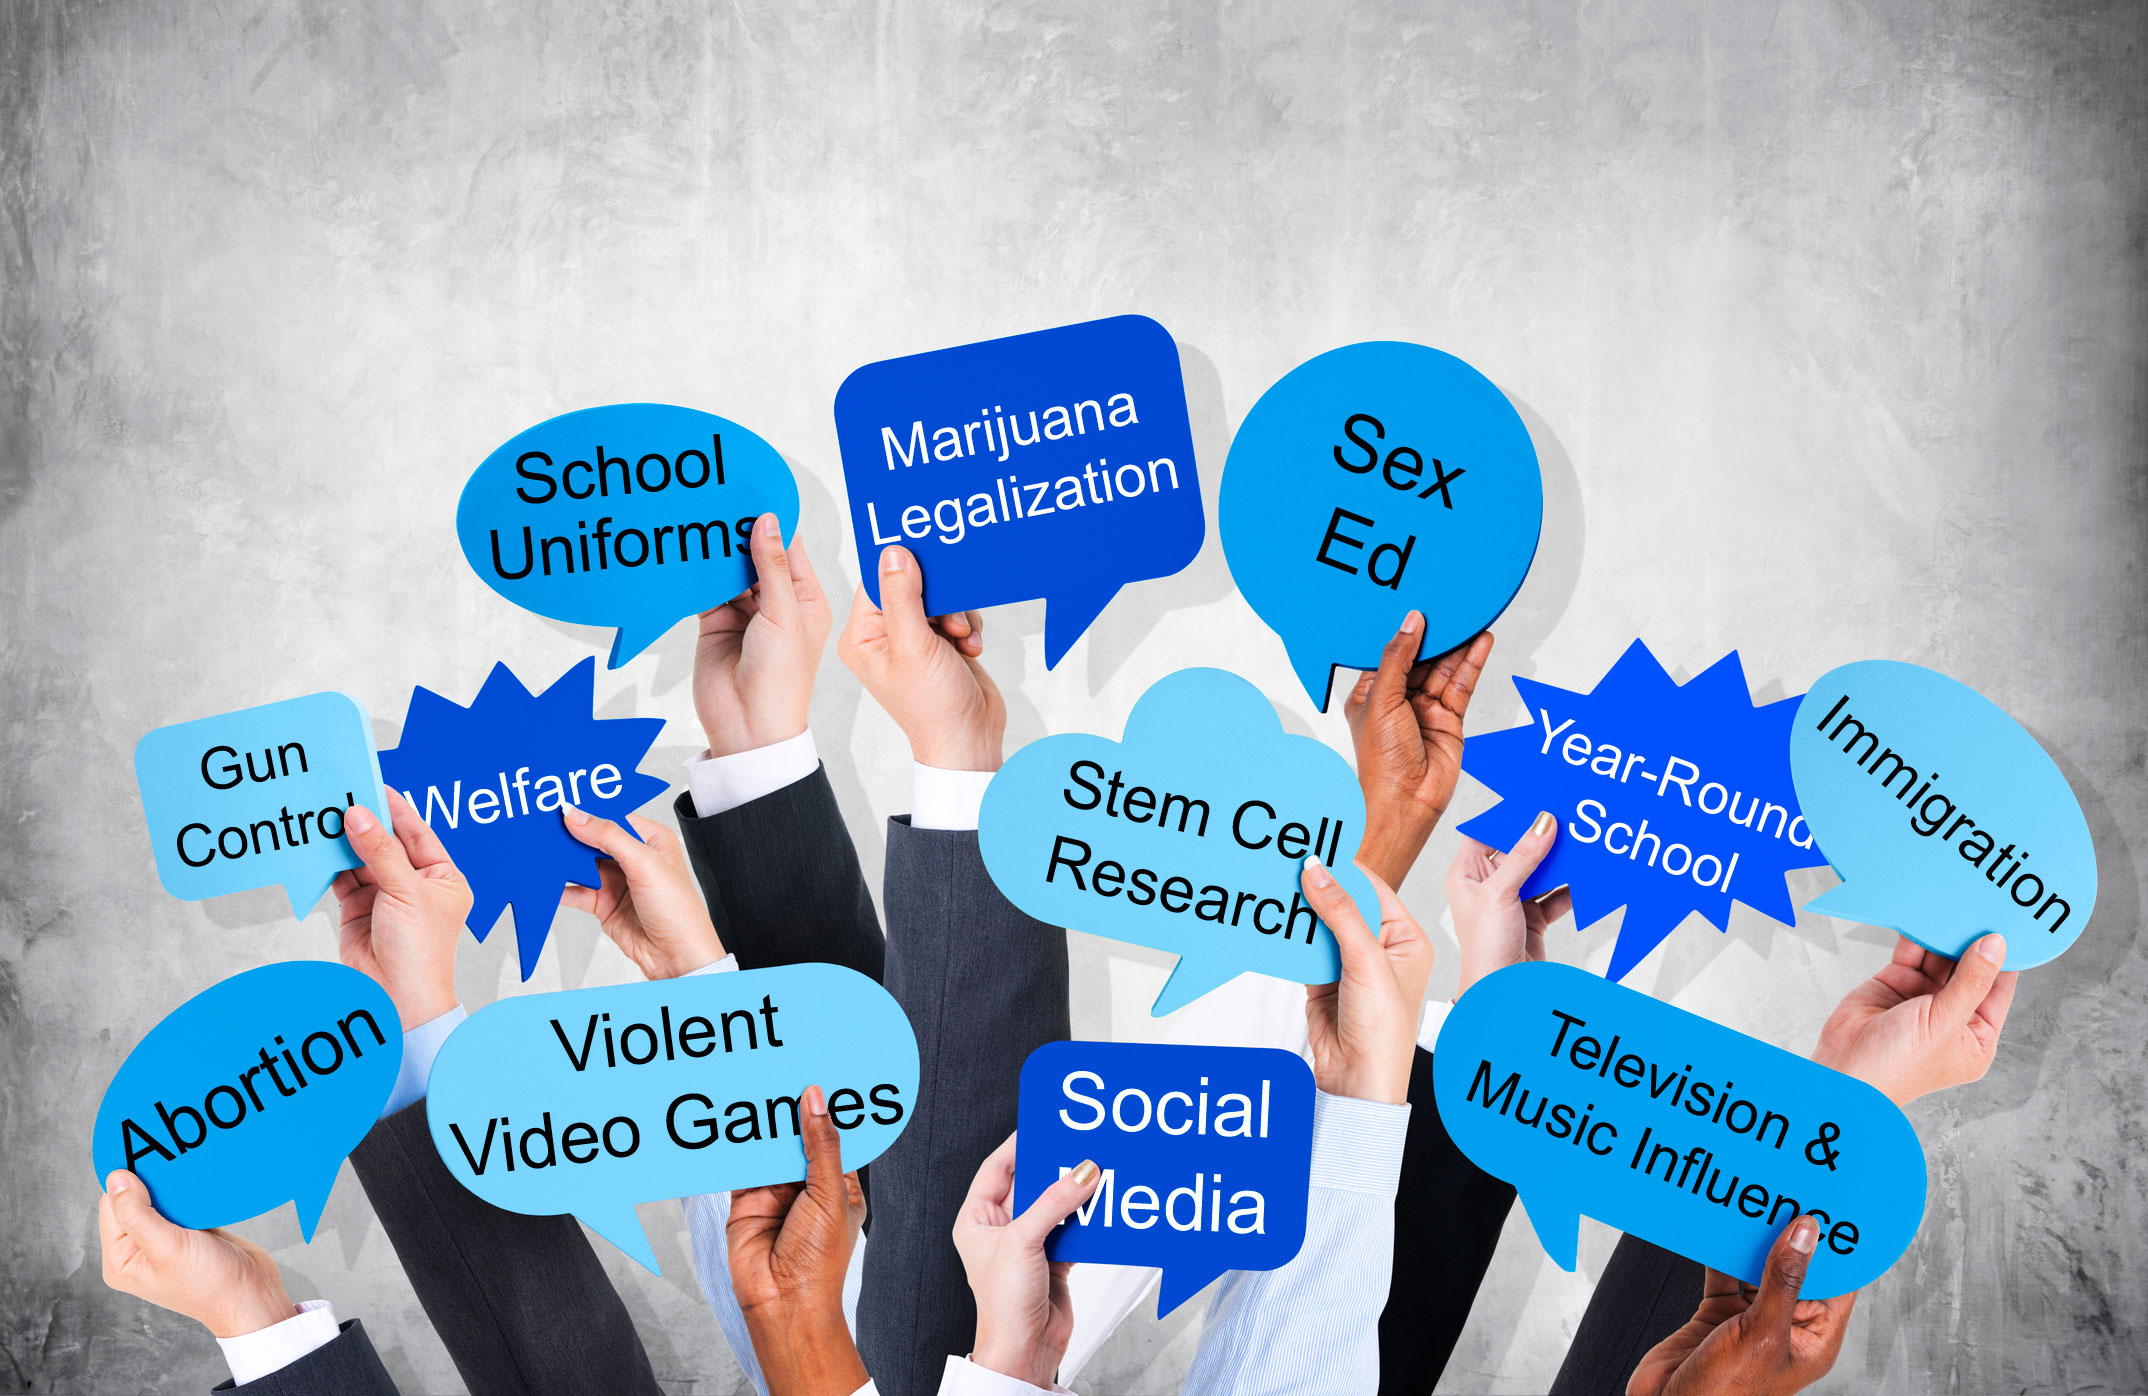 007 2148x1396 Speech Bubbles Current Controversial Topics For High School Researchs Impressive Research Papers Full